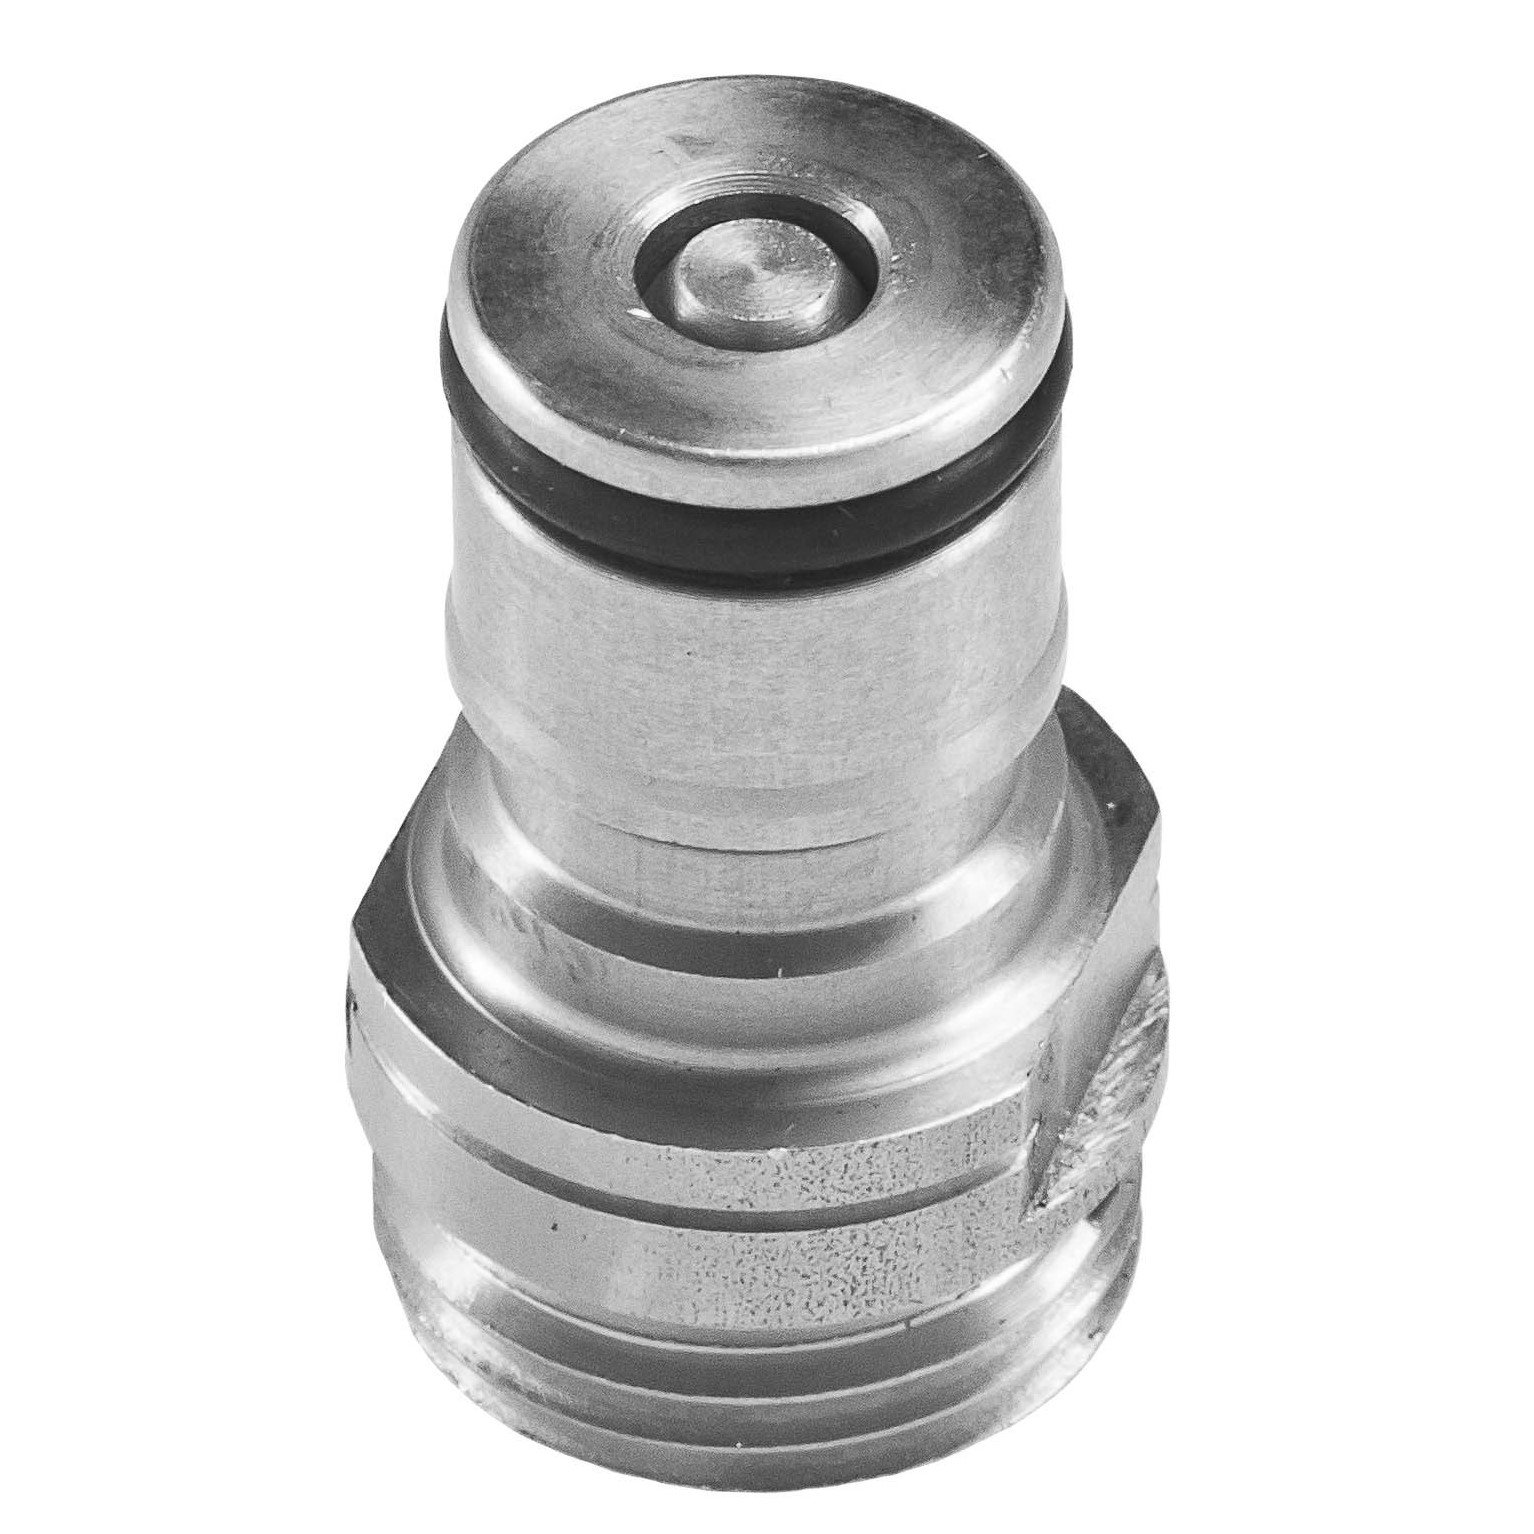 BSP Male - Male Turret Fitting